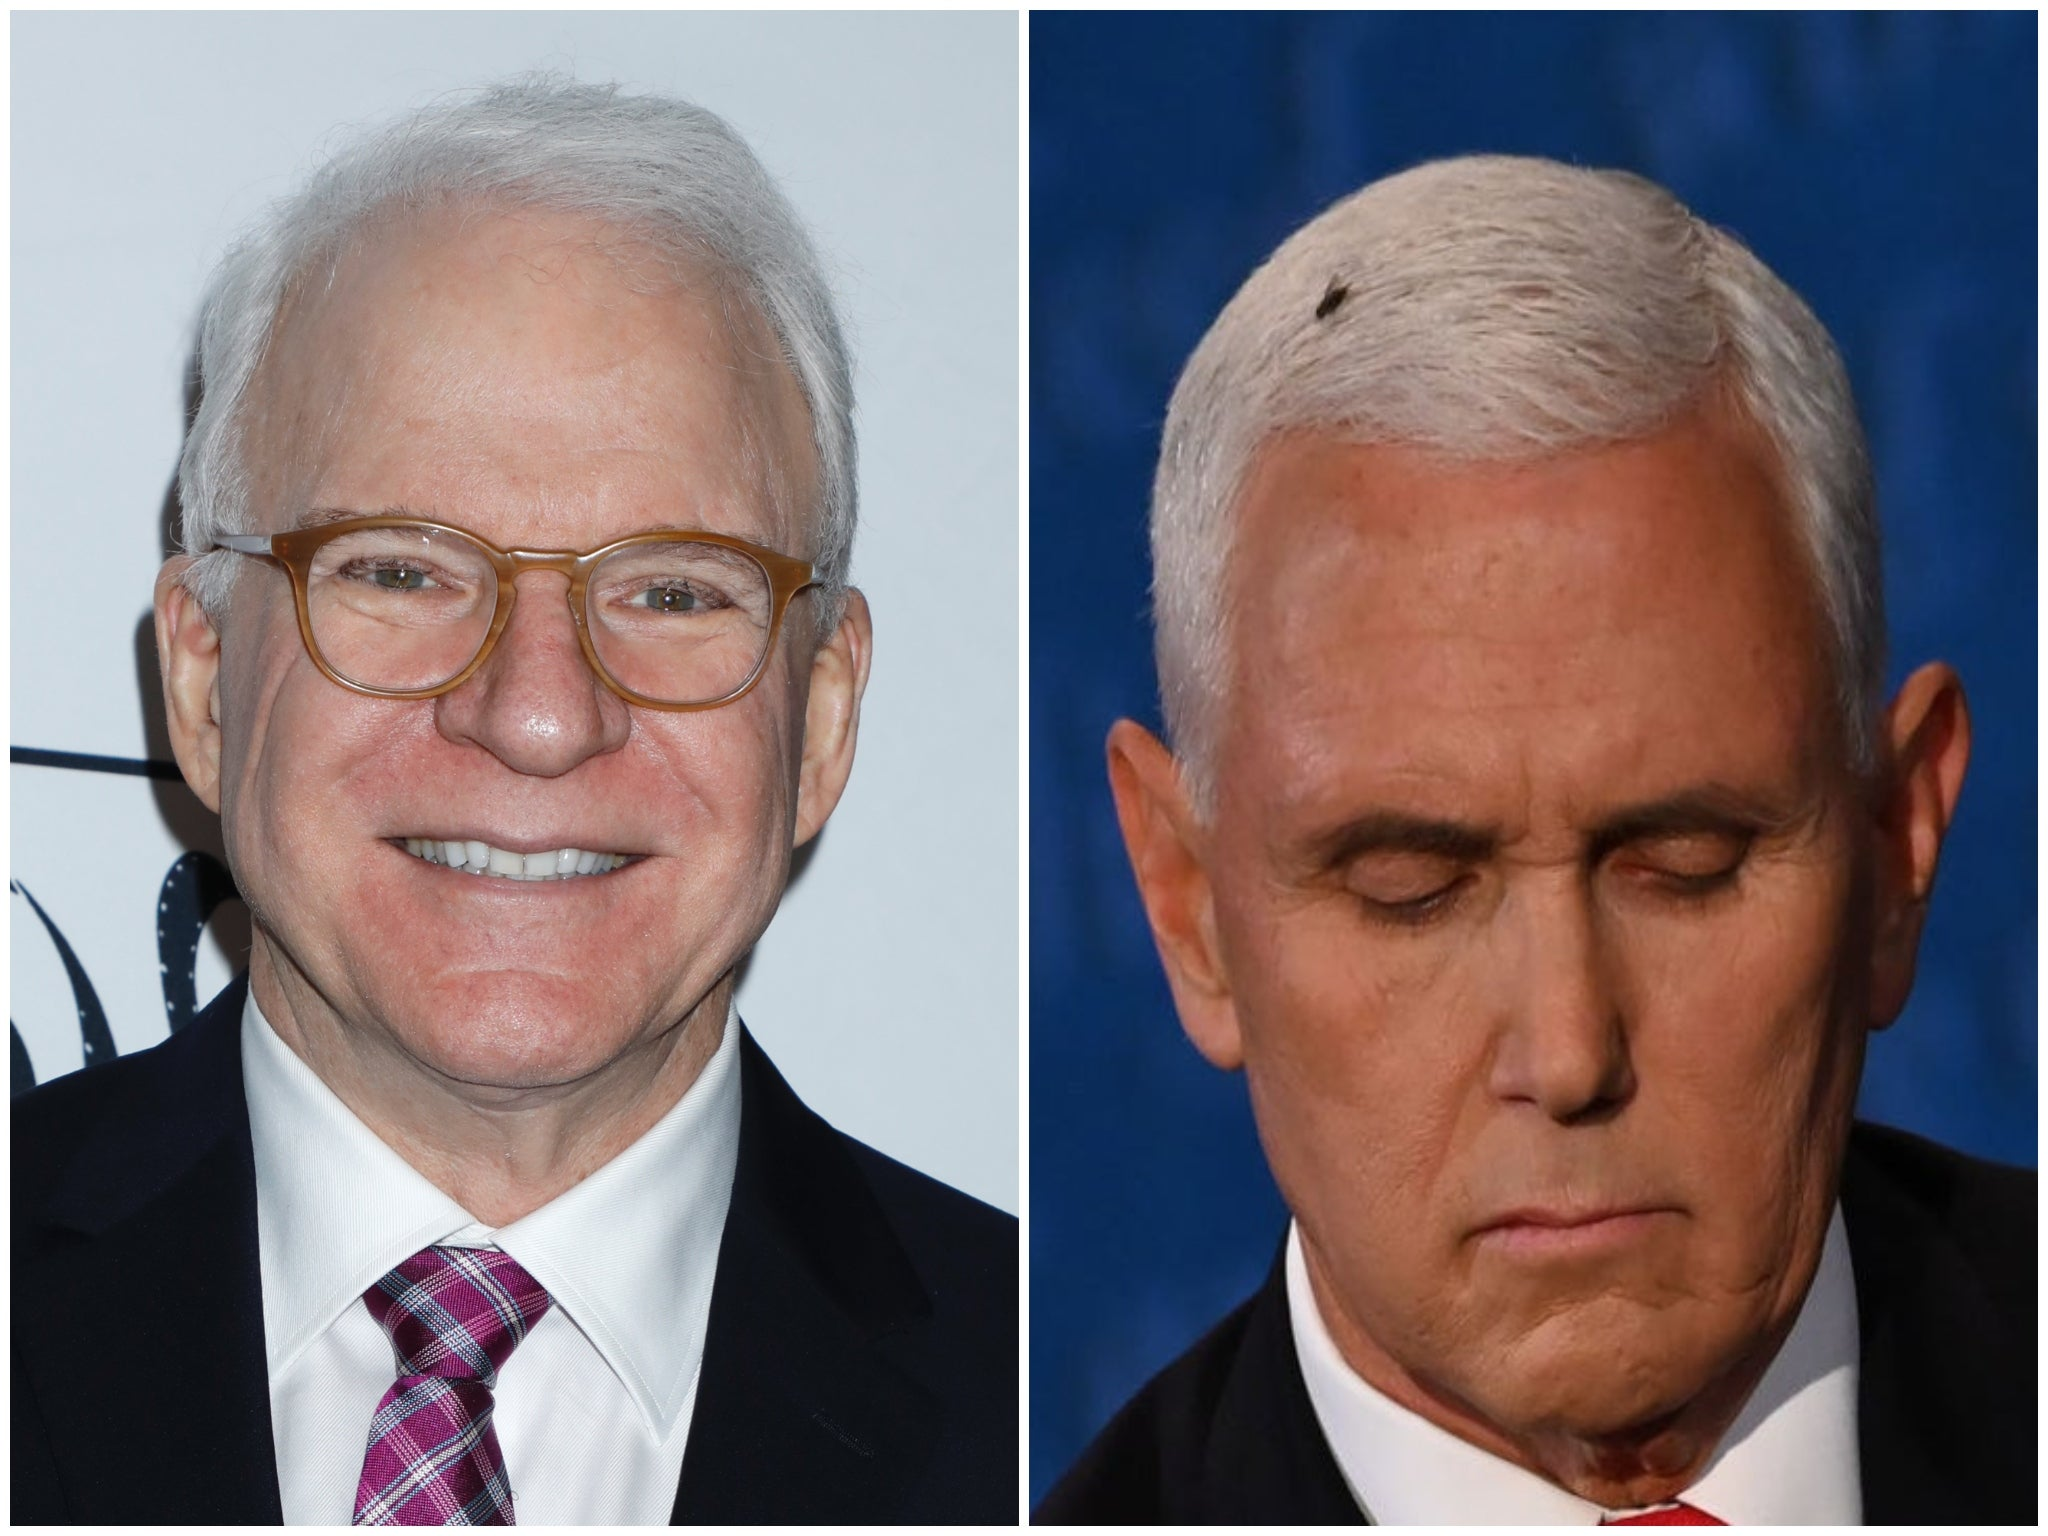 Steve Martin jokes he has a Mike Pence-themed Halloween costume